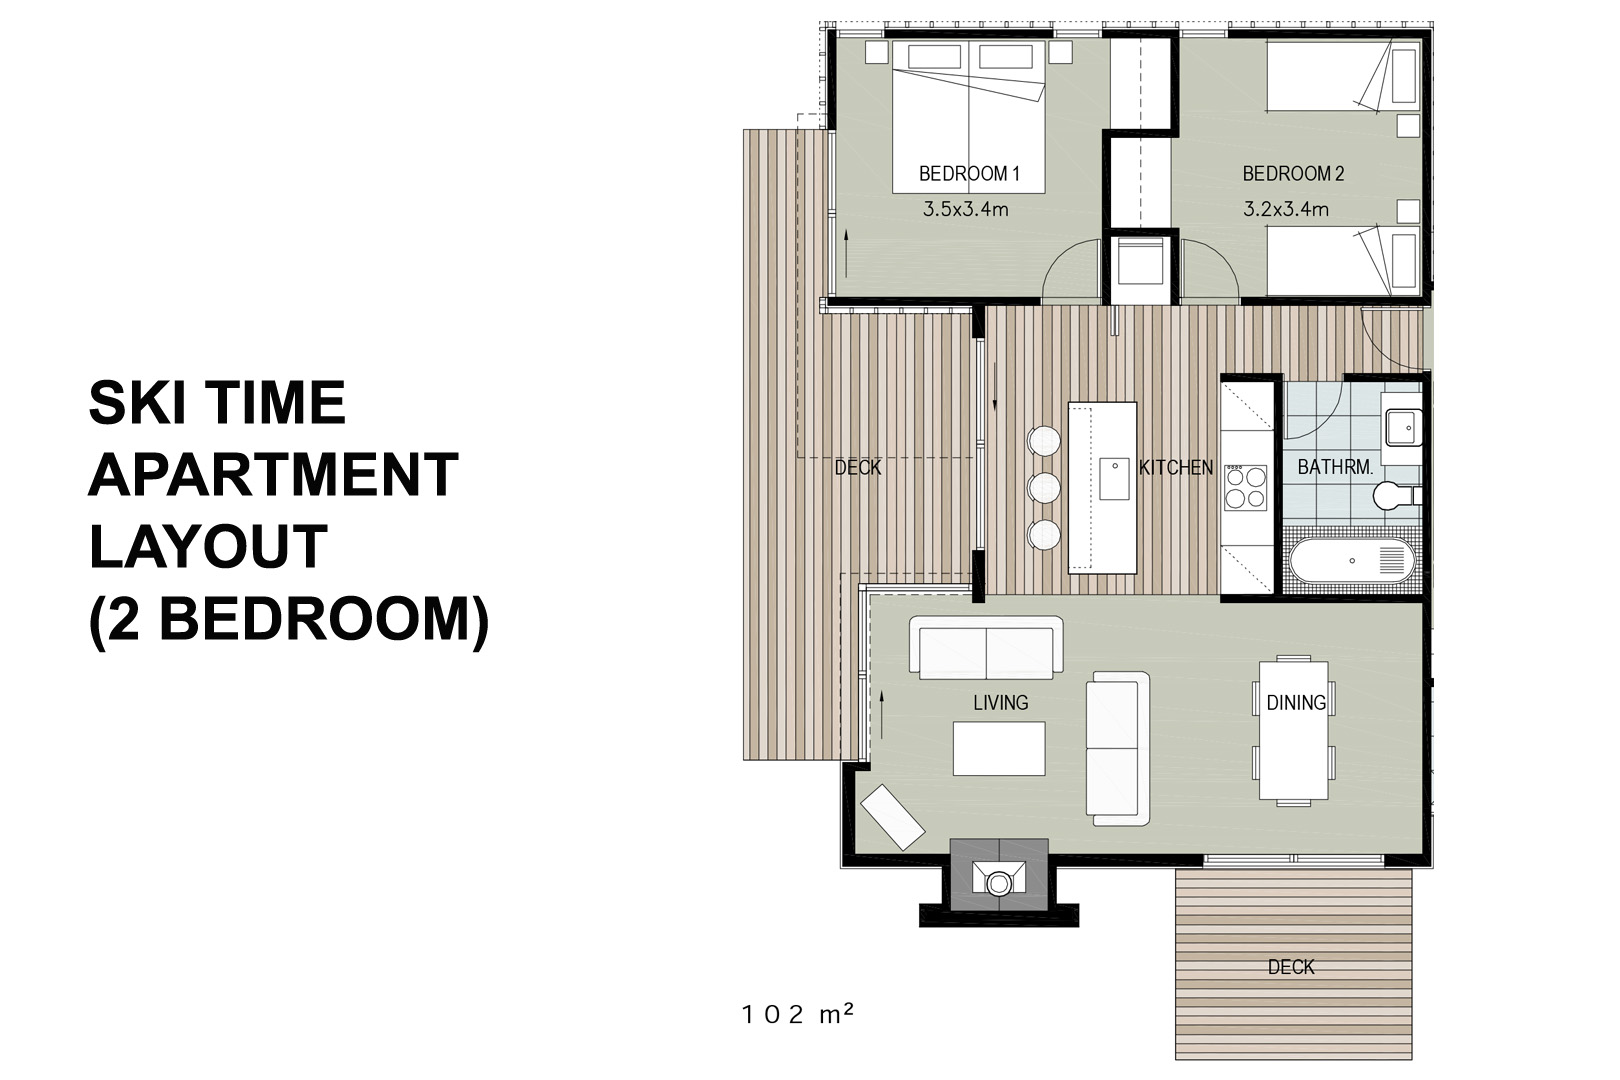 2 bedroom apartment layout – Ski Time Methven